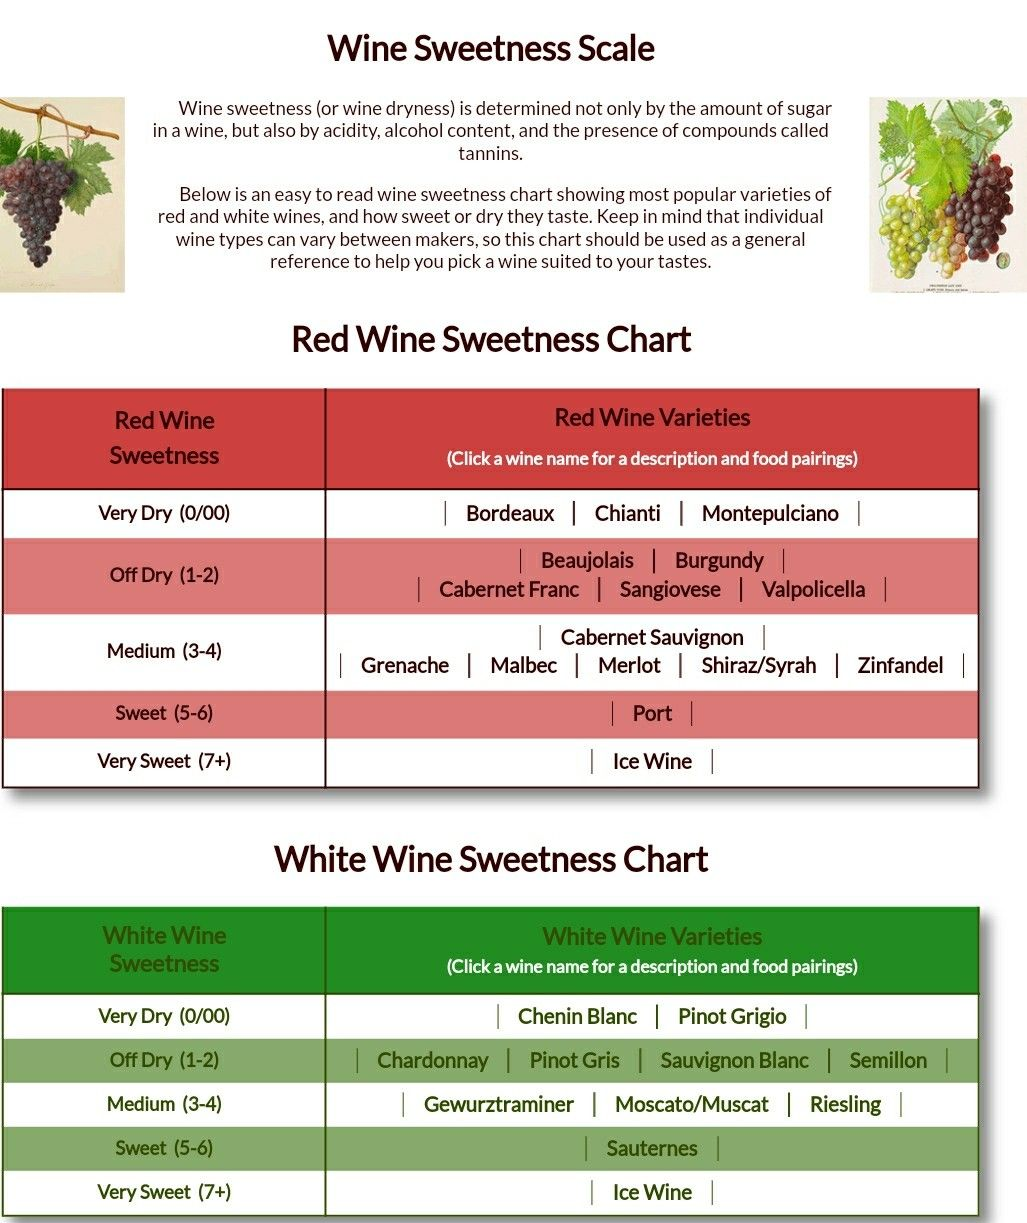 Wine Sweetness Chart Alcohol Content Types Of Wine White Wine